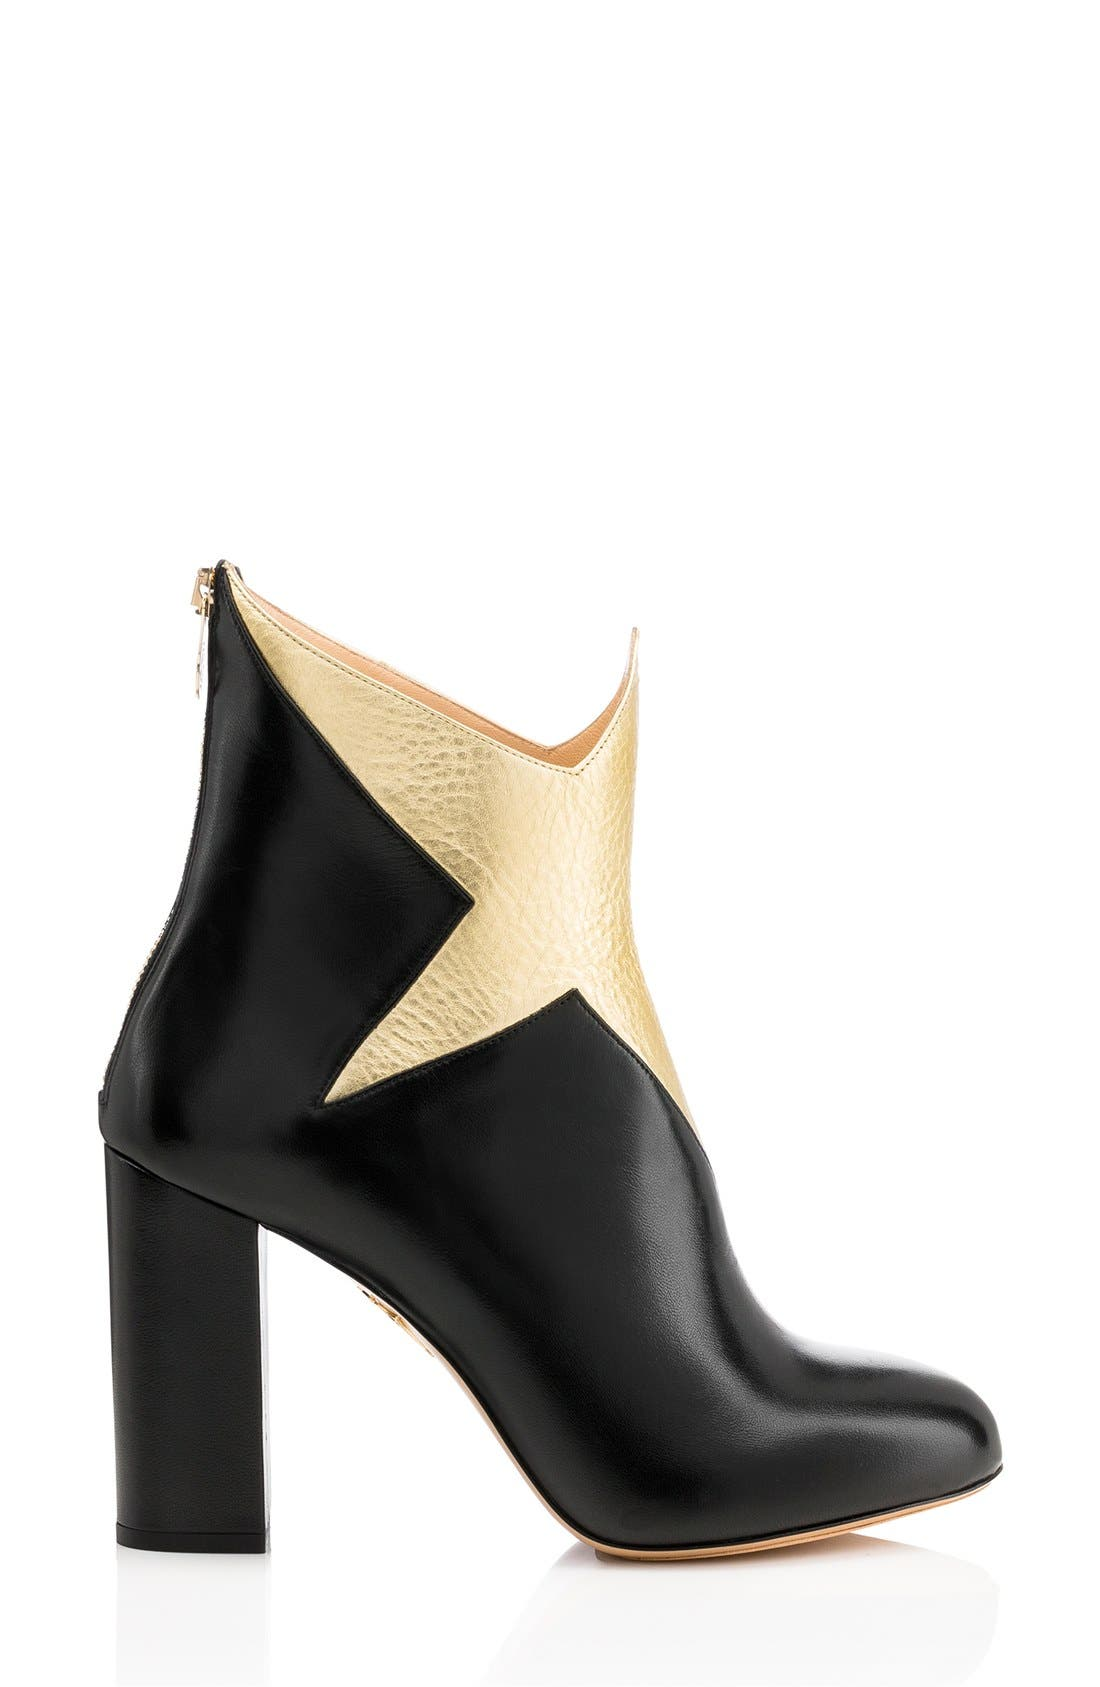 Main Image - Charlotte Olympia 'Galactica Star' Bootie (Women)